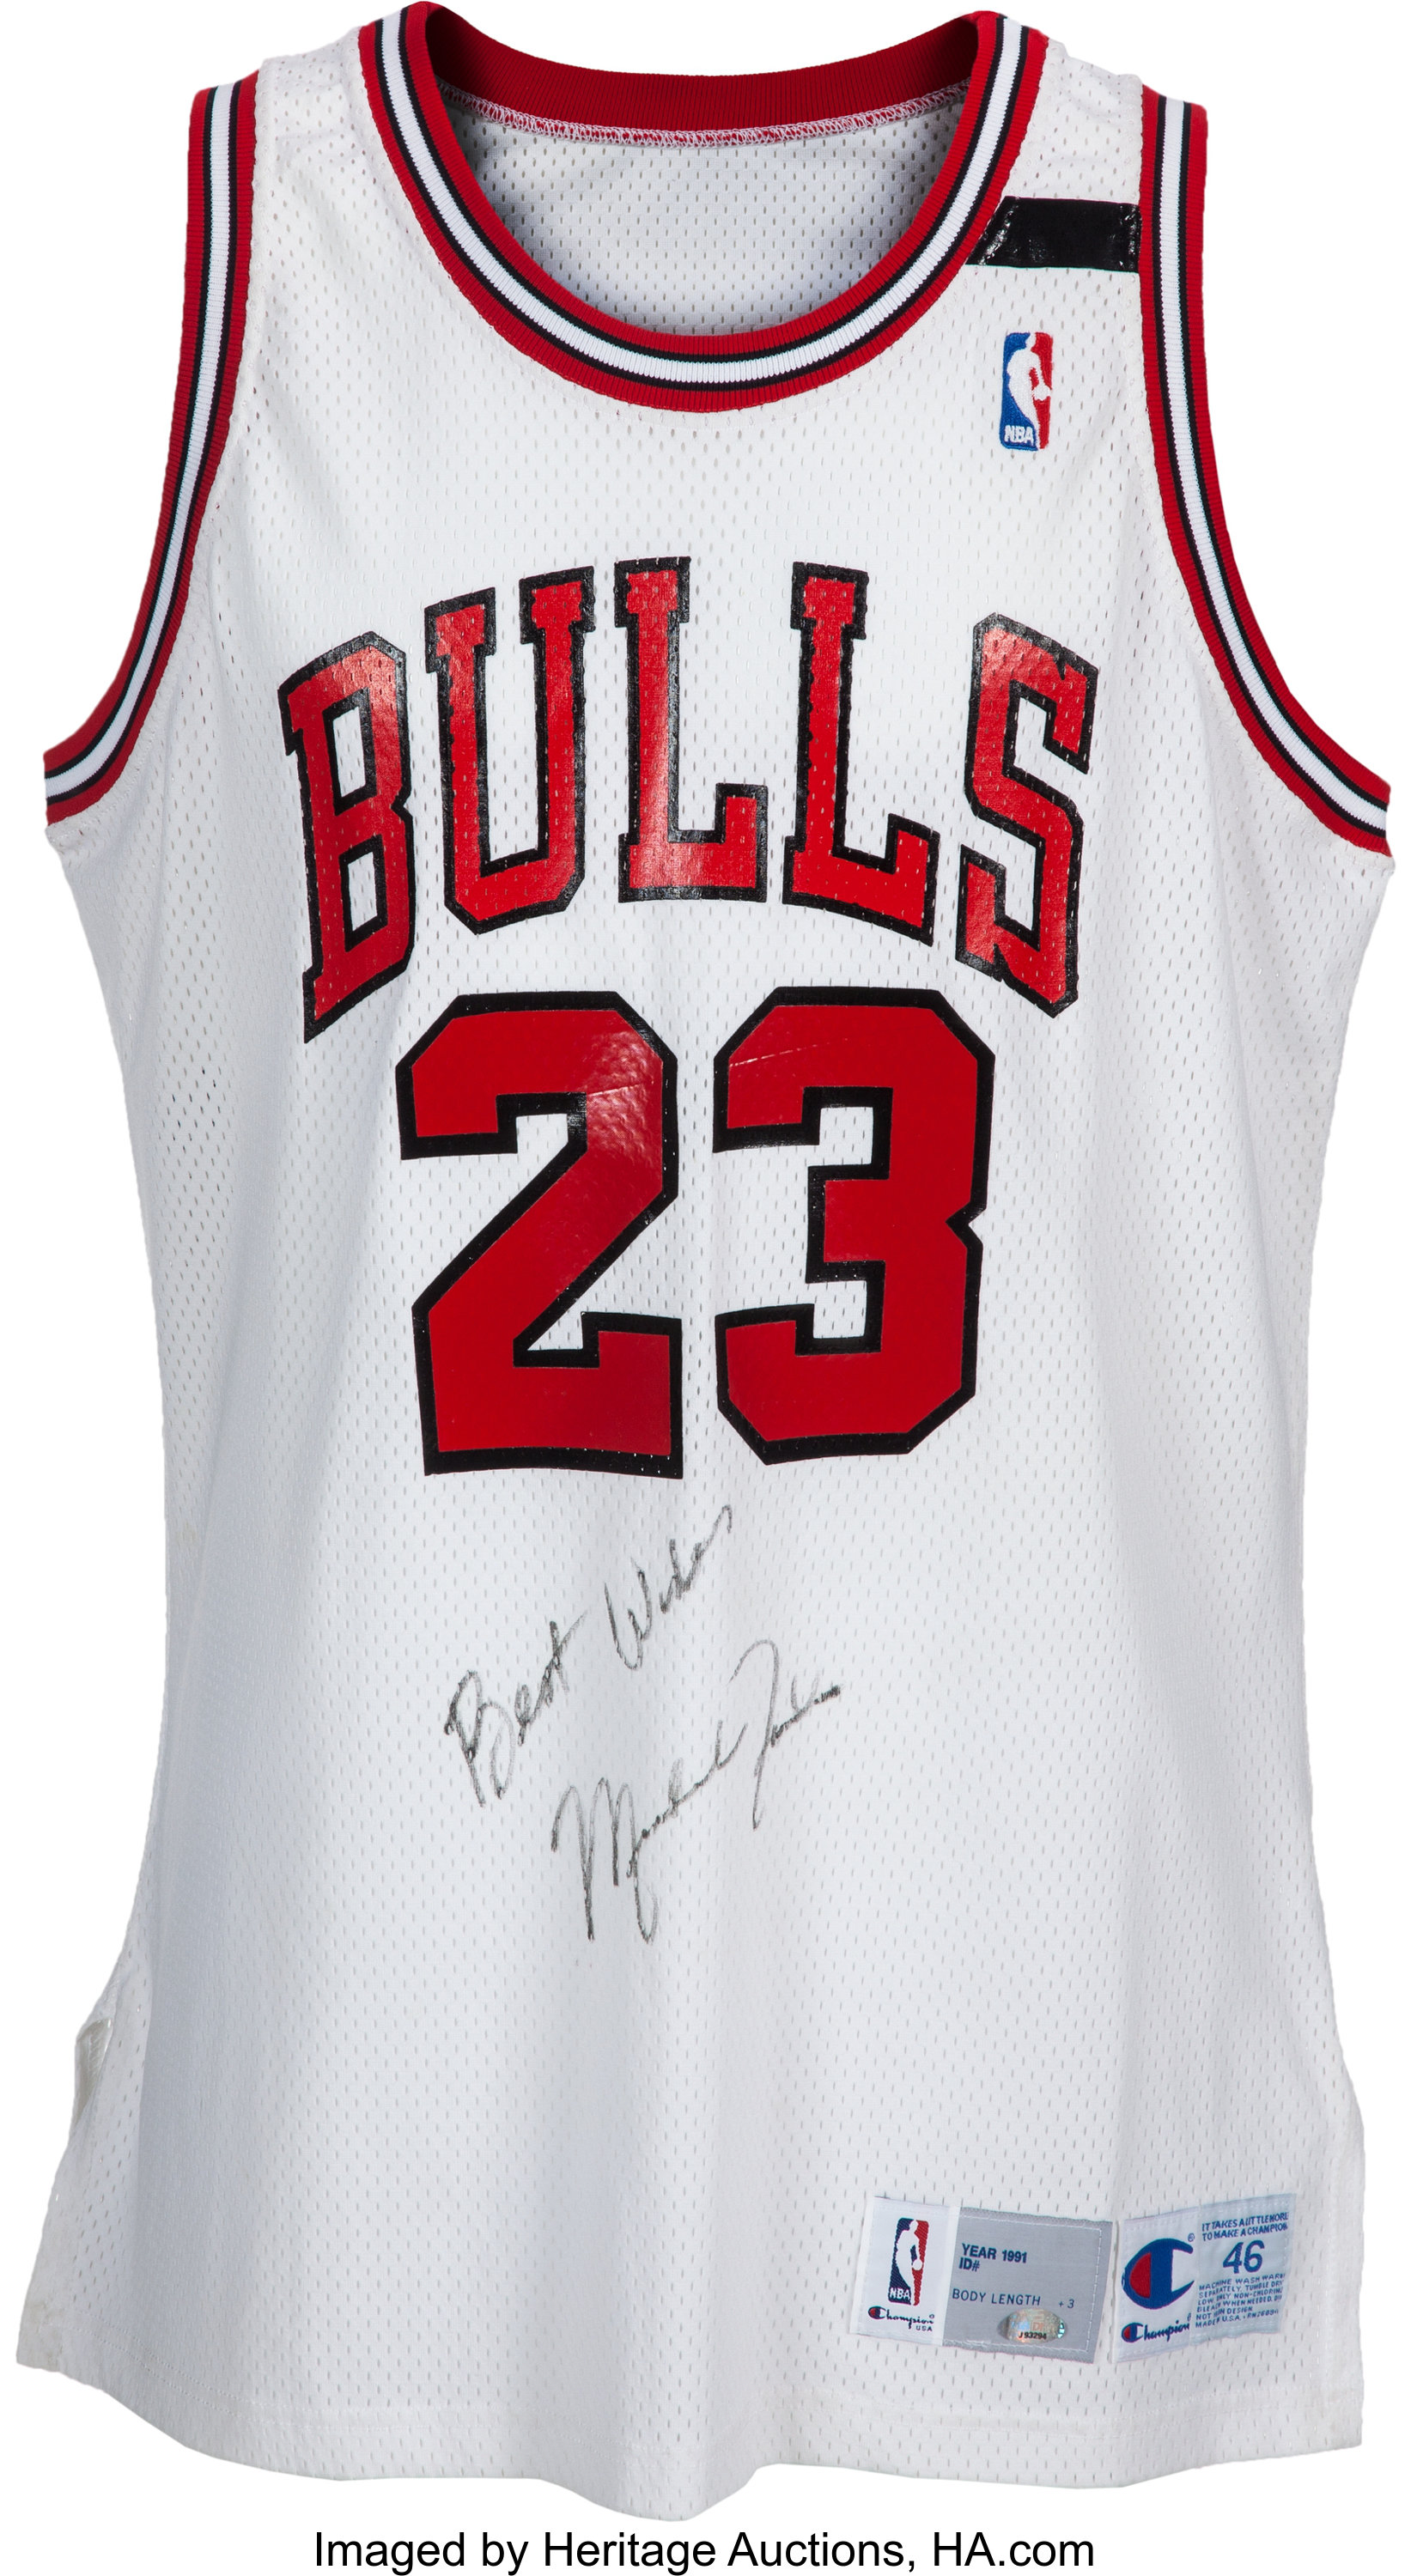 quality design 00cc4 47faa 1991-92 Michael Jordan Game Worn Chicago Bulls Jersey with ...